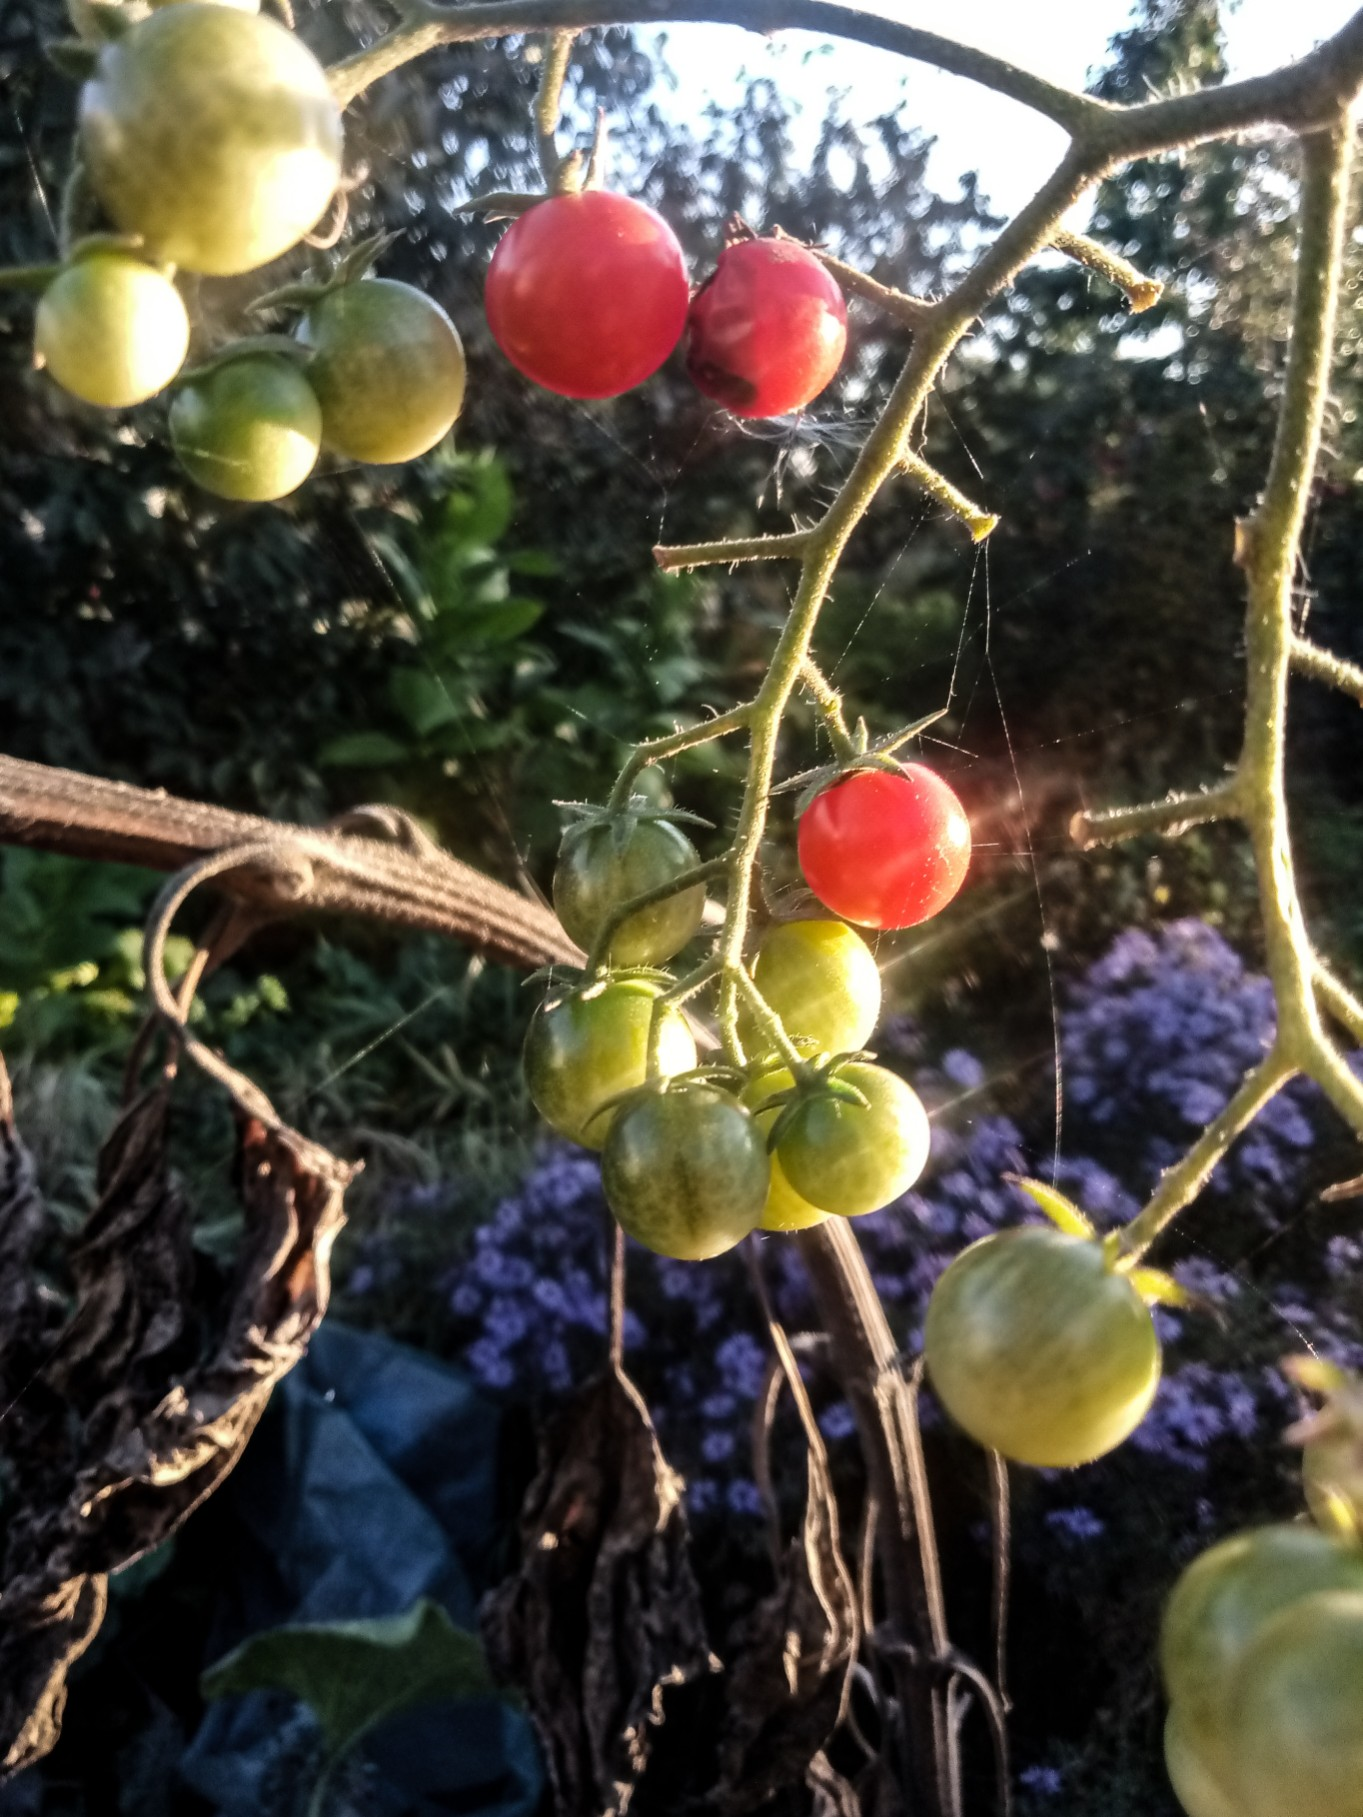 Cherry tomatoes photo 9